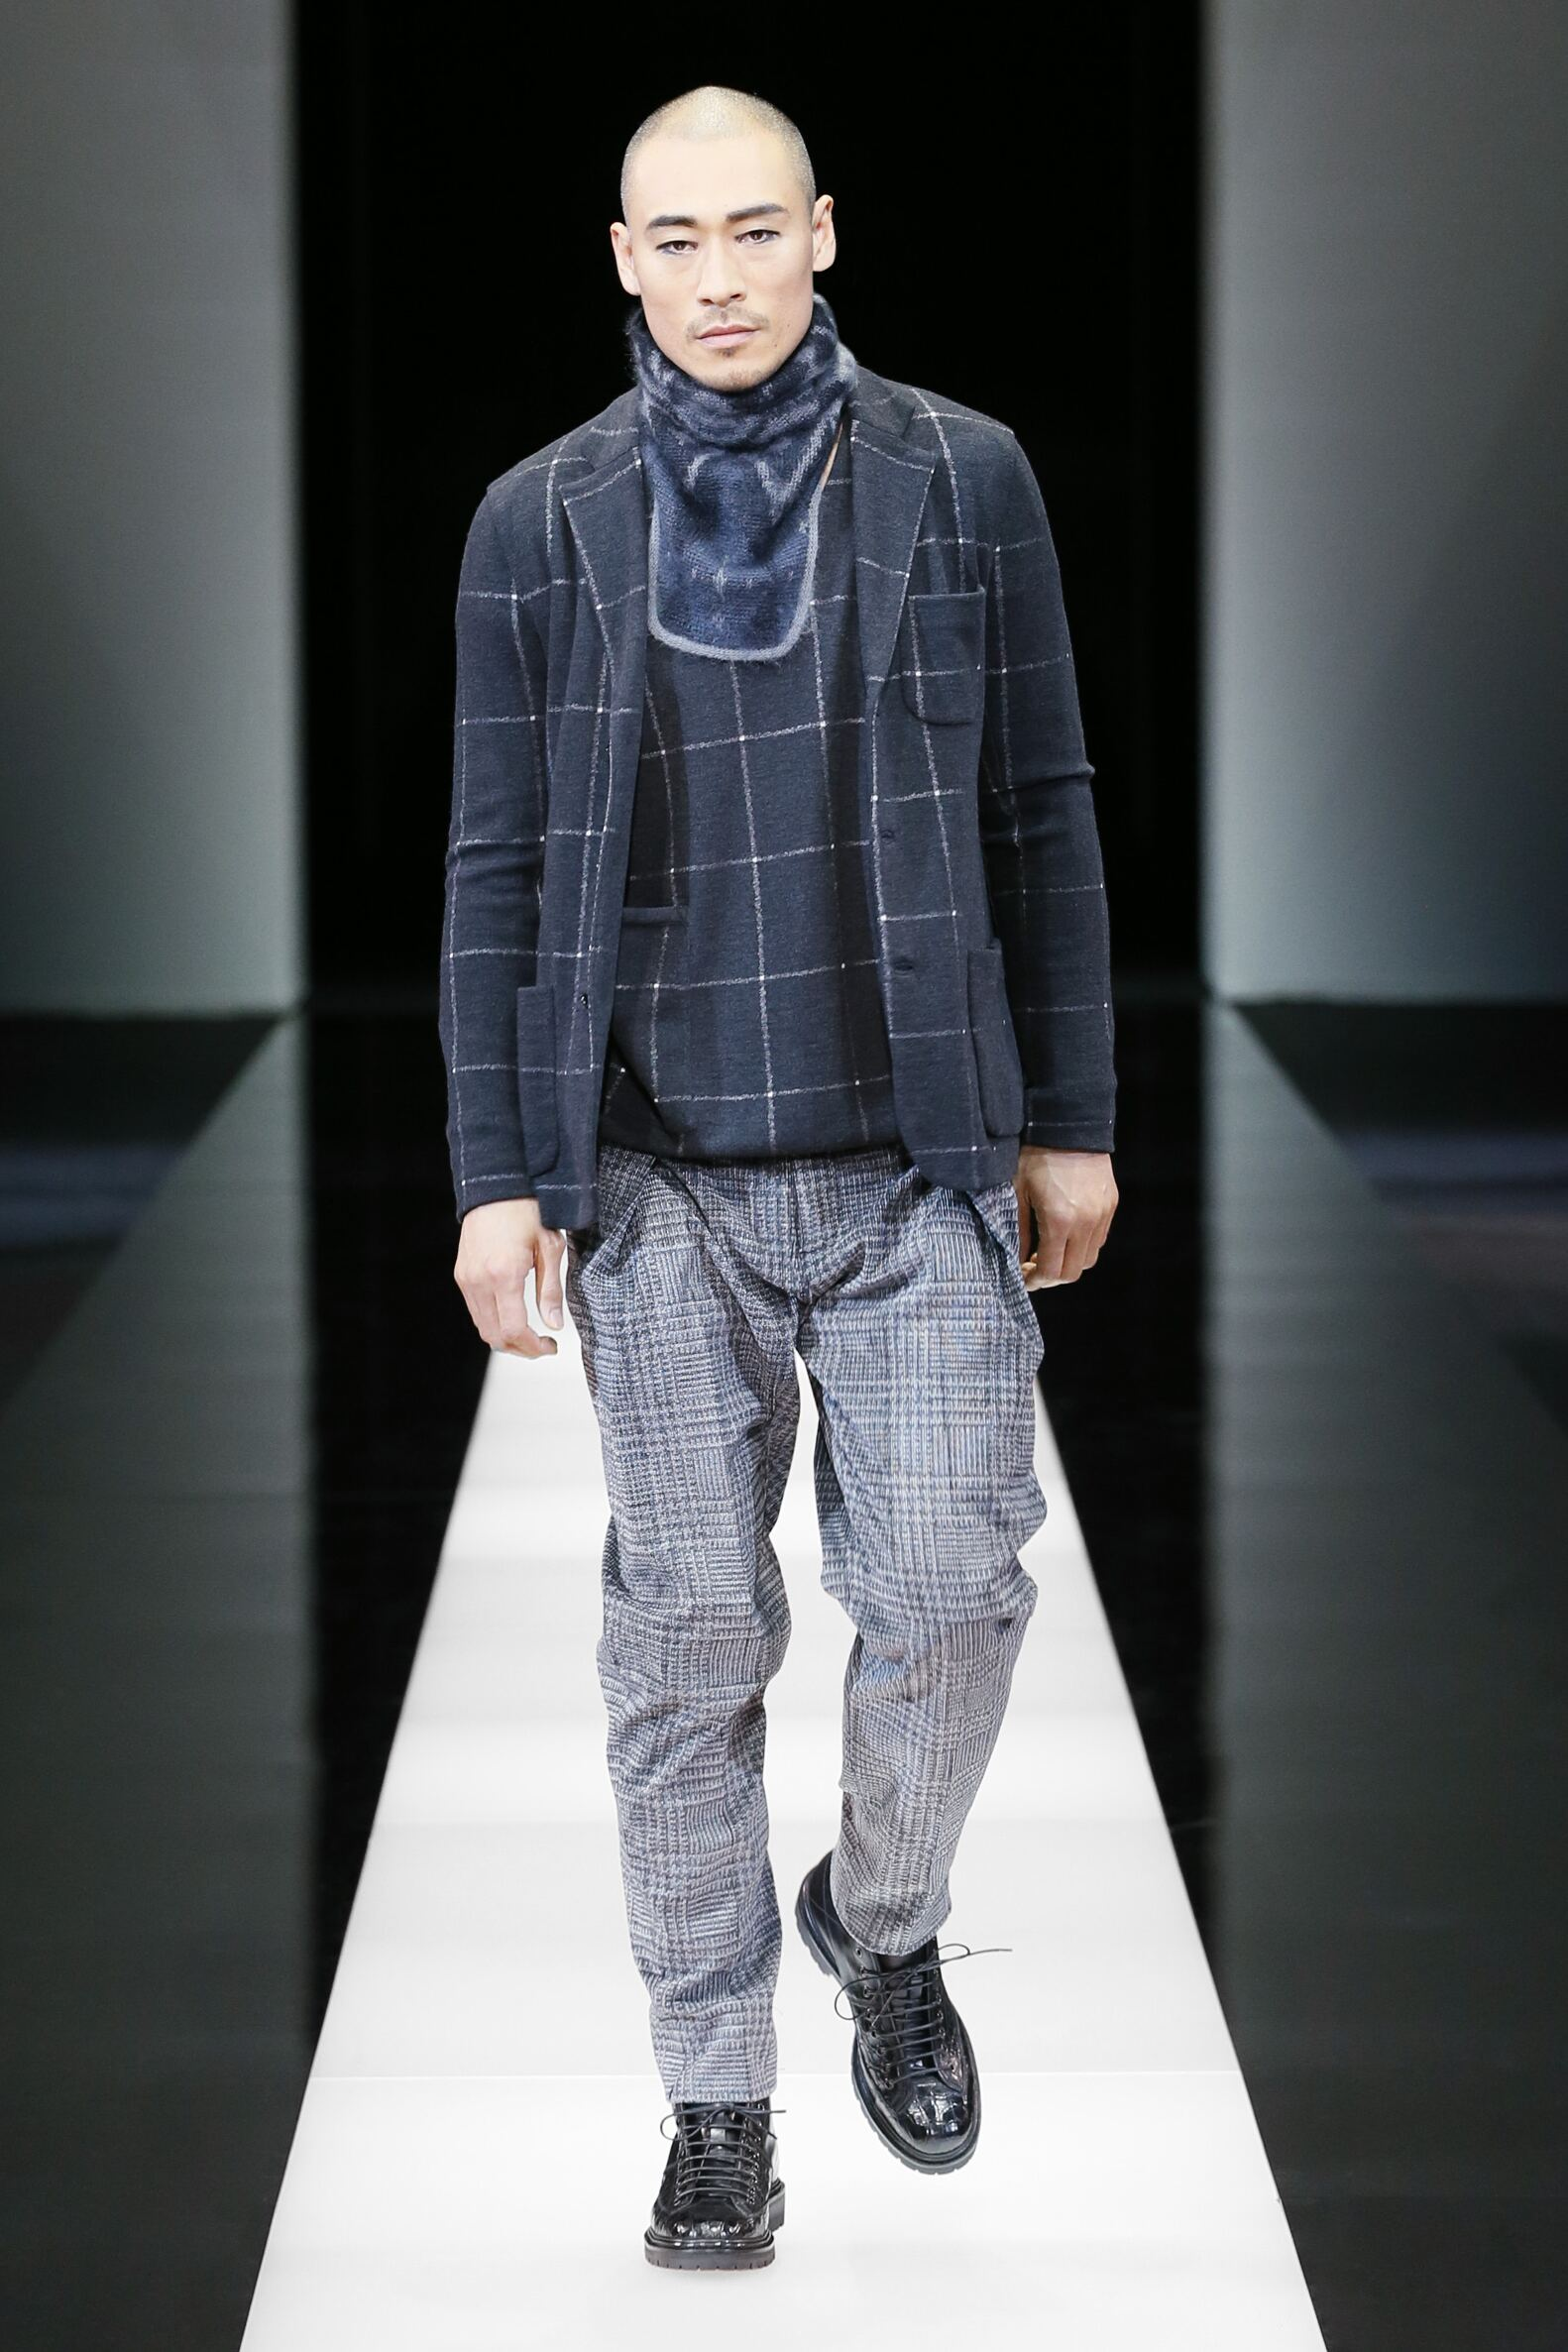 Giorgio Armani Fall Winter 2015 16 Men's Collection Milan Fashion Week Fashion Show